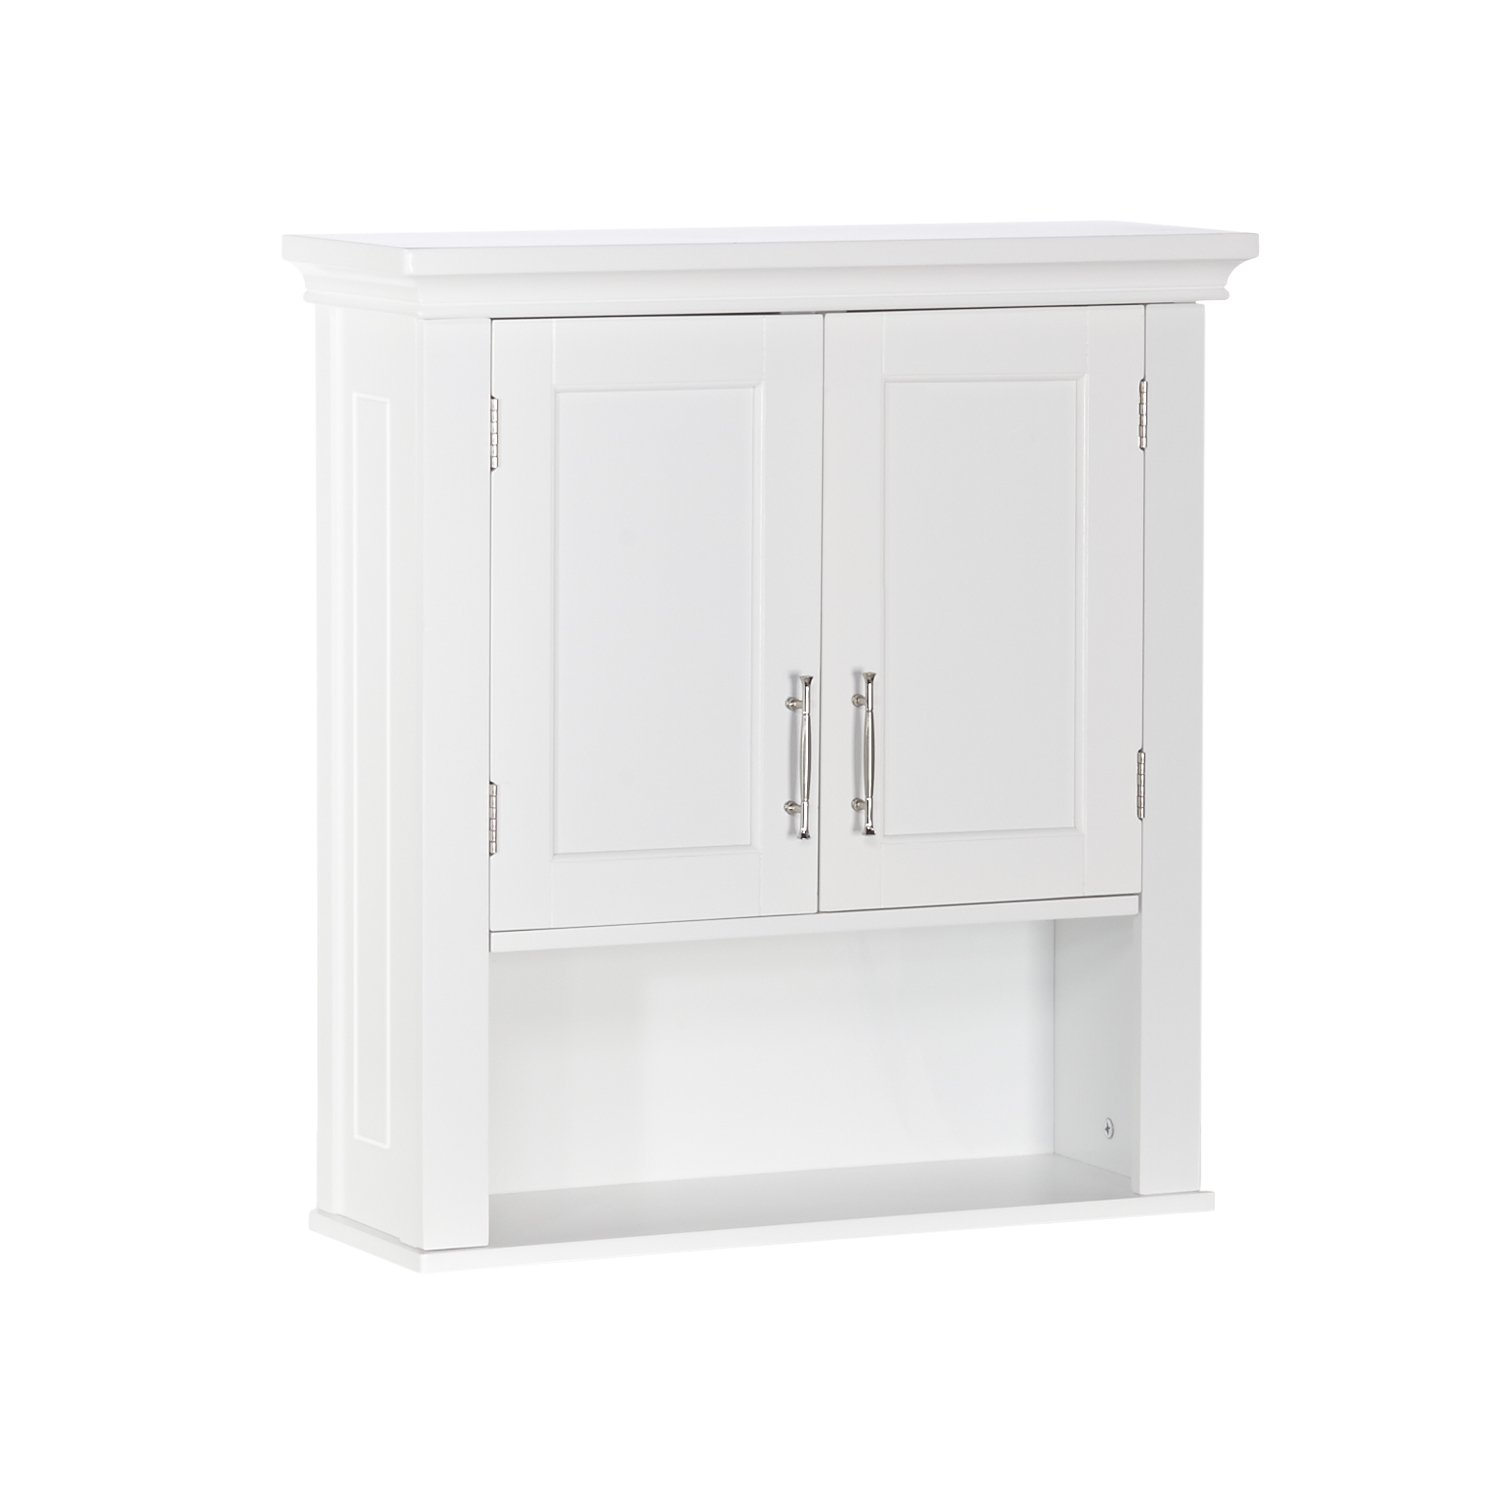 RiverRidge Somerset Collection Two-Door Wall Cabinet, White by RiverRidge Home